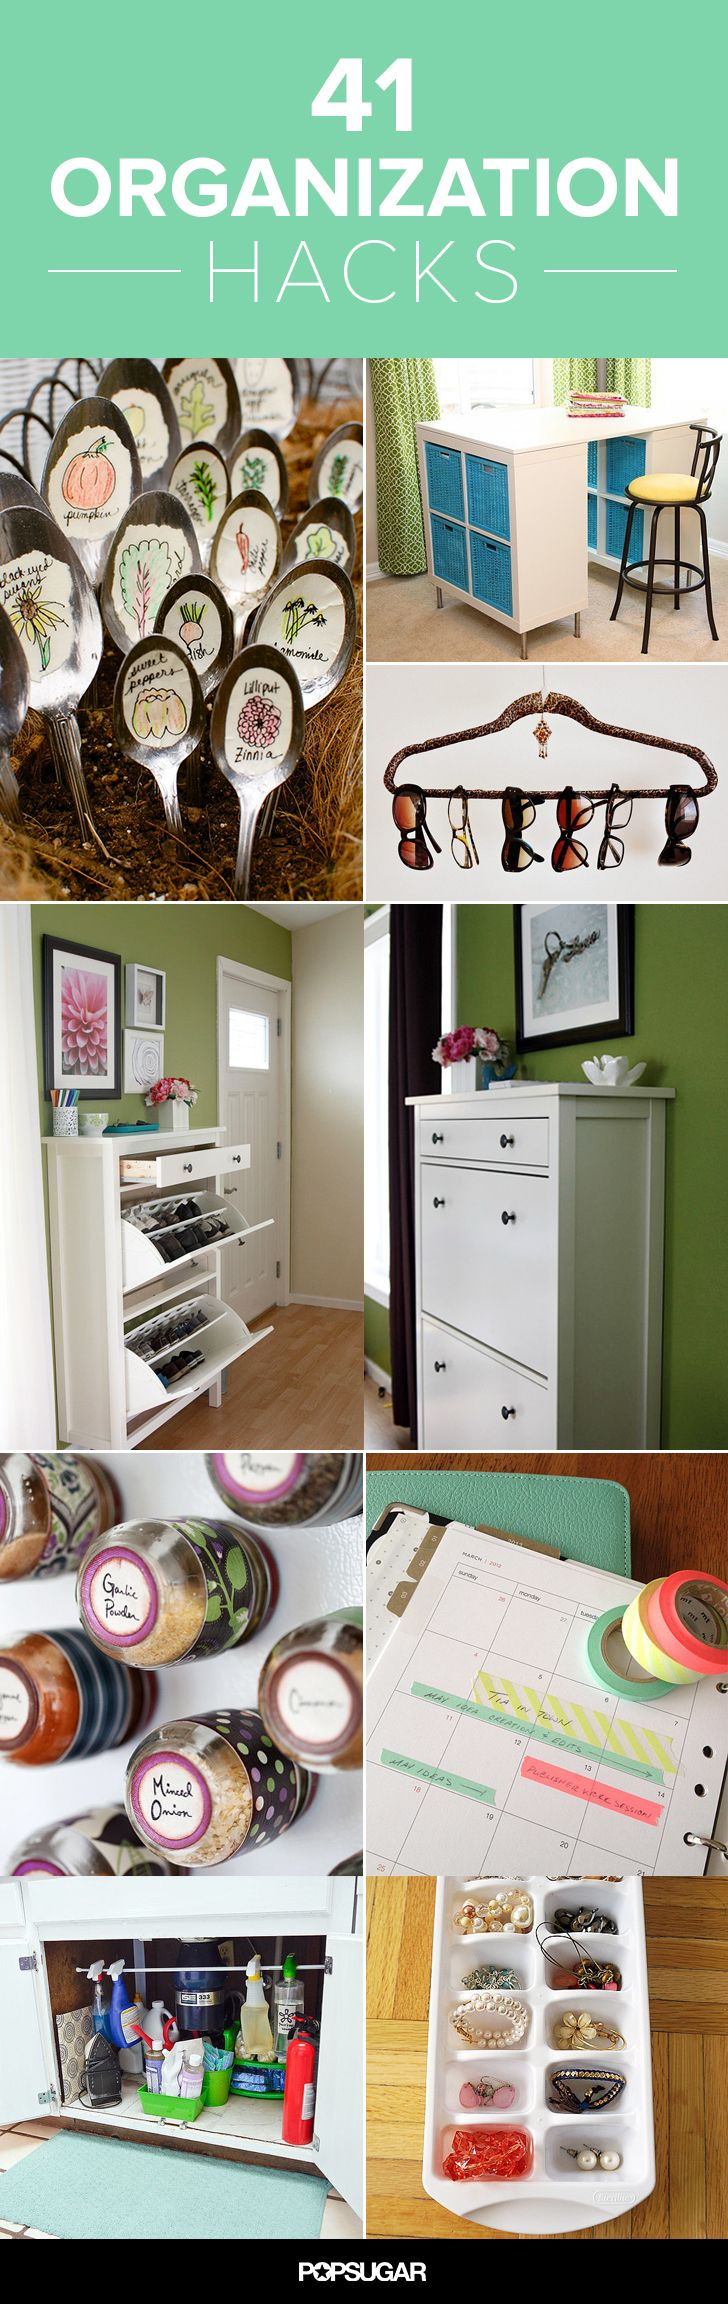 Read on for some of the cleverest organization DIYs and tricks that will get your home orderly in no time.